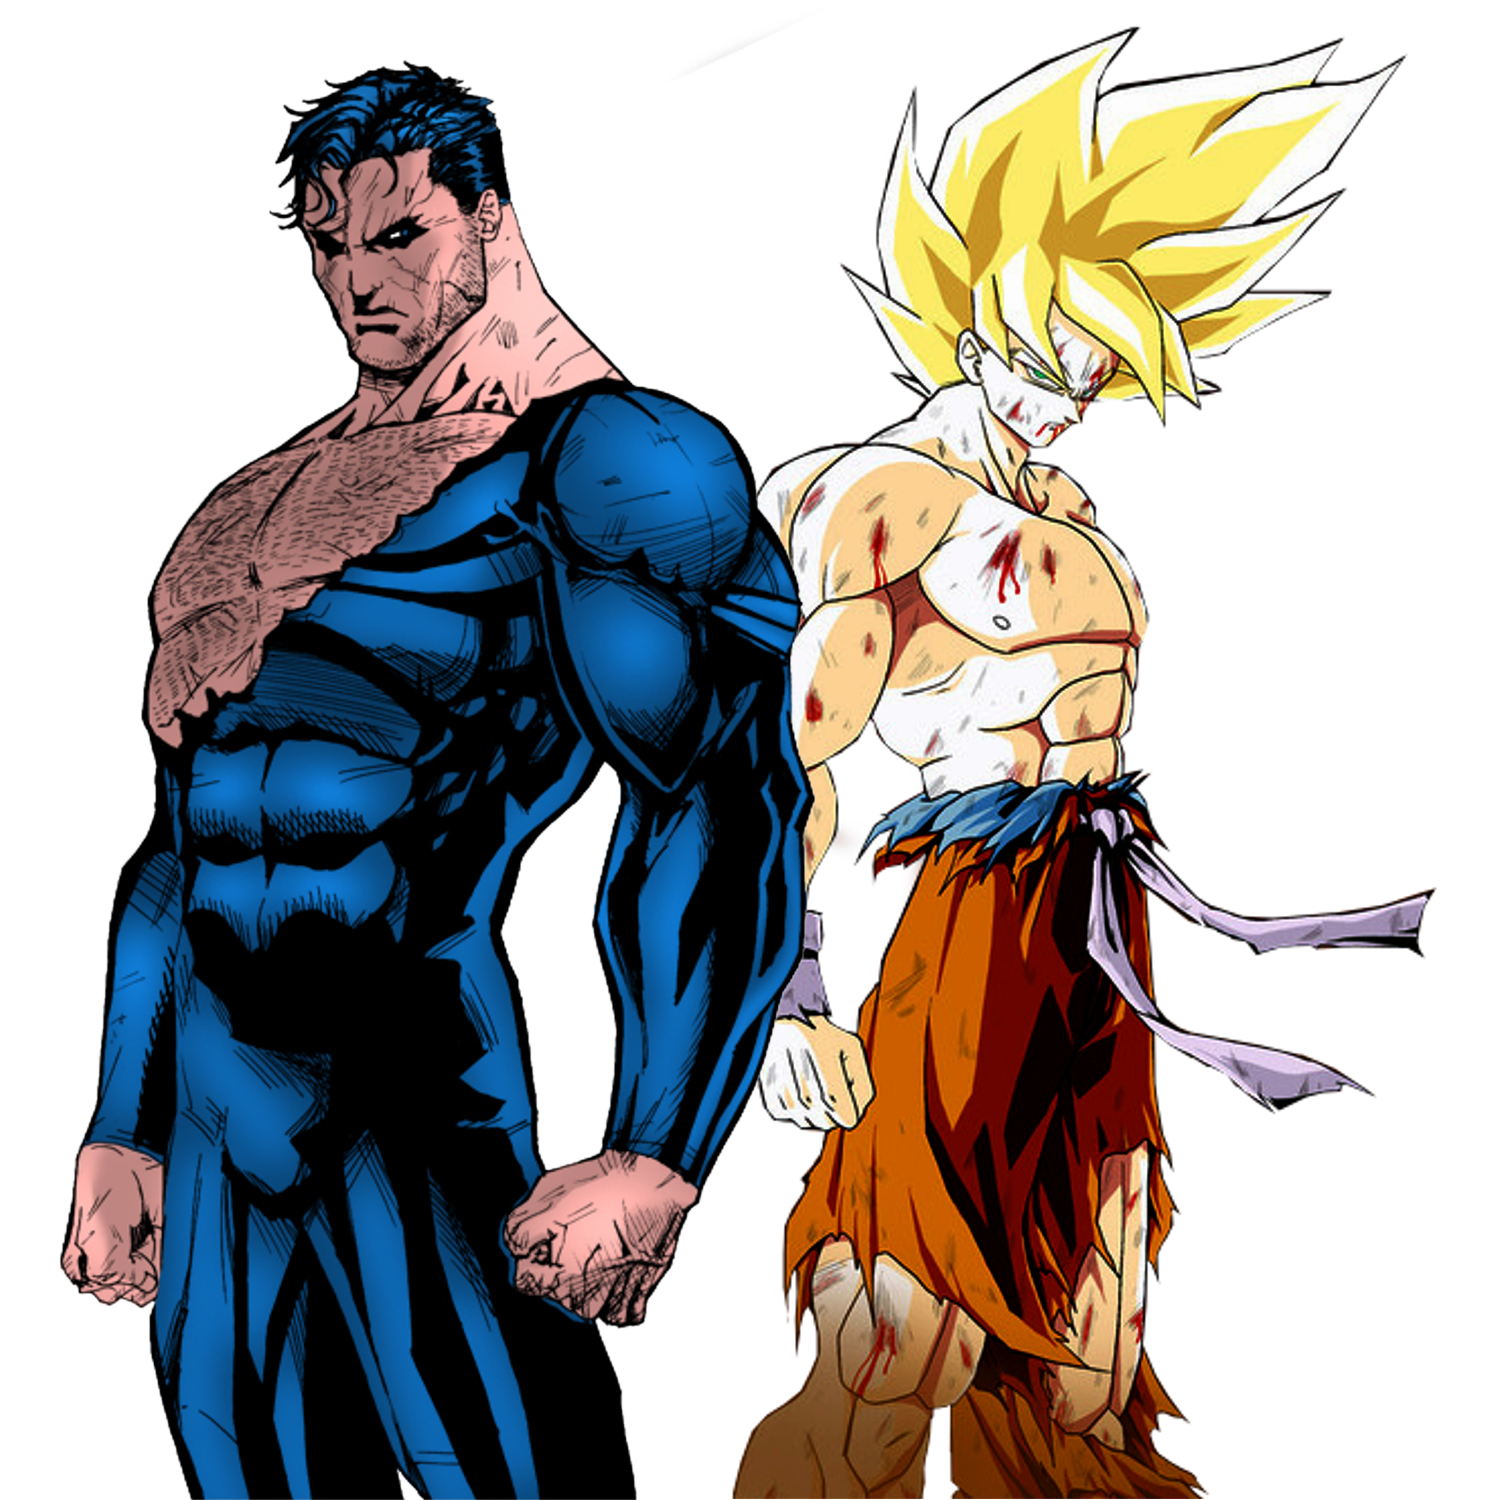 Goku vs Superman by JayC79 on DeviantArt